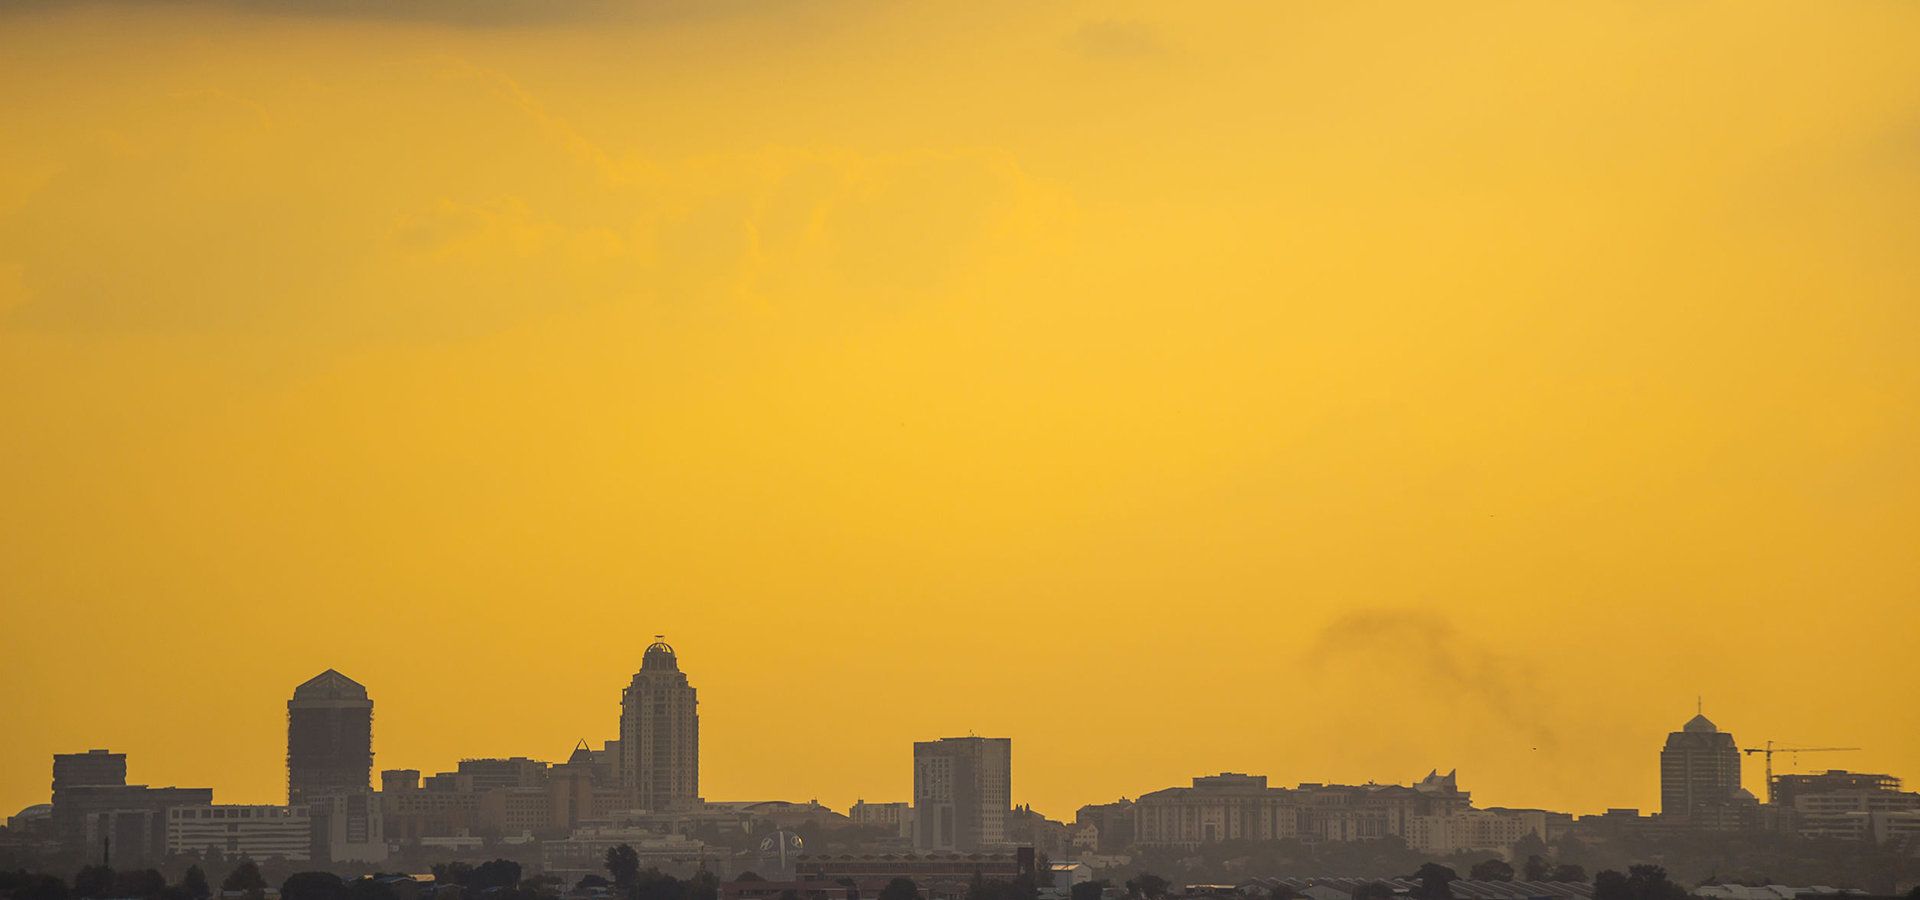 28388189 – sandton skyline, johannesburg during an orange, moody sunset